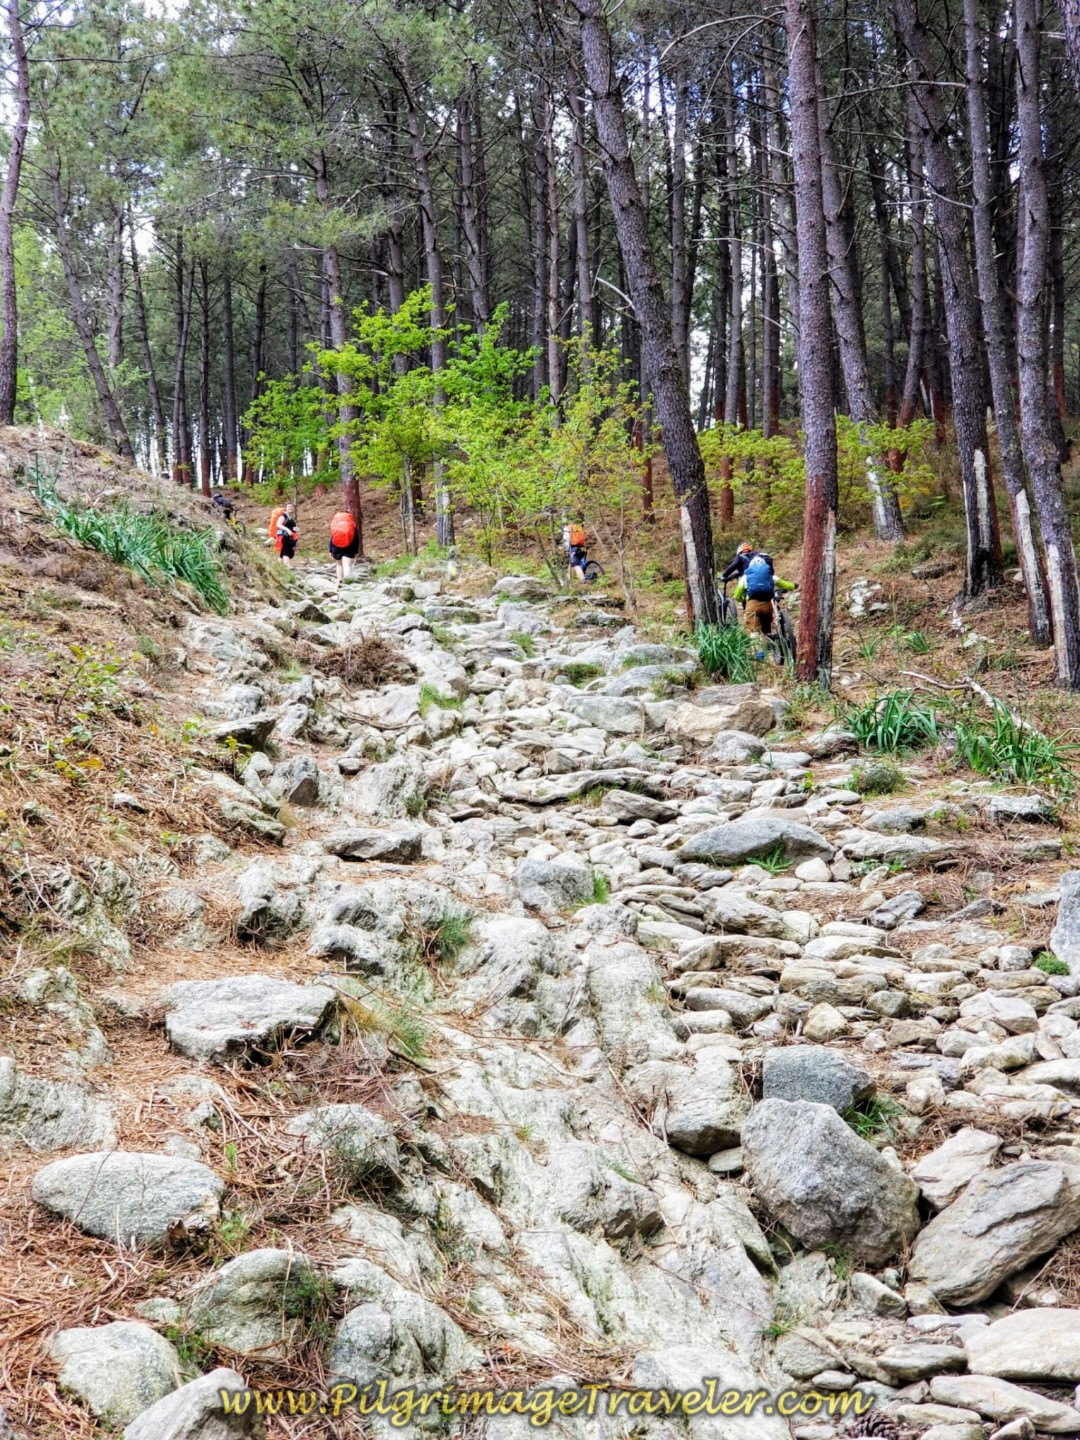 Last, Steep, Rocky Section toward the top of the Alto da Portela Grande de Labruja on day eighteen on the Central Route of the Portuguese Camino